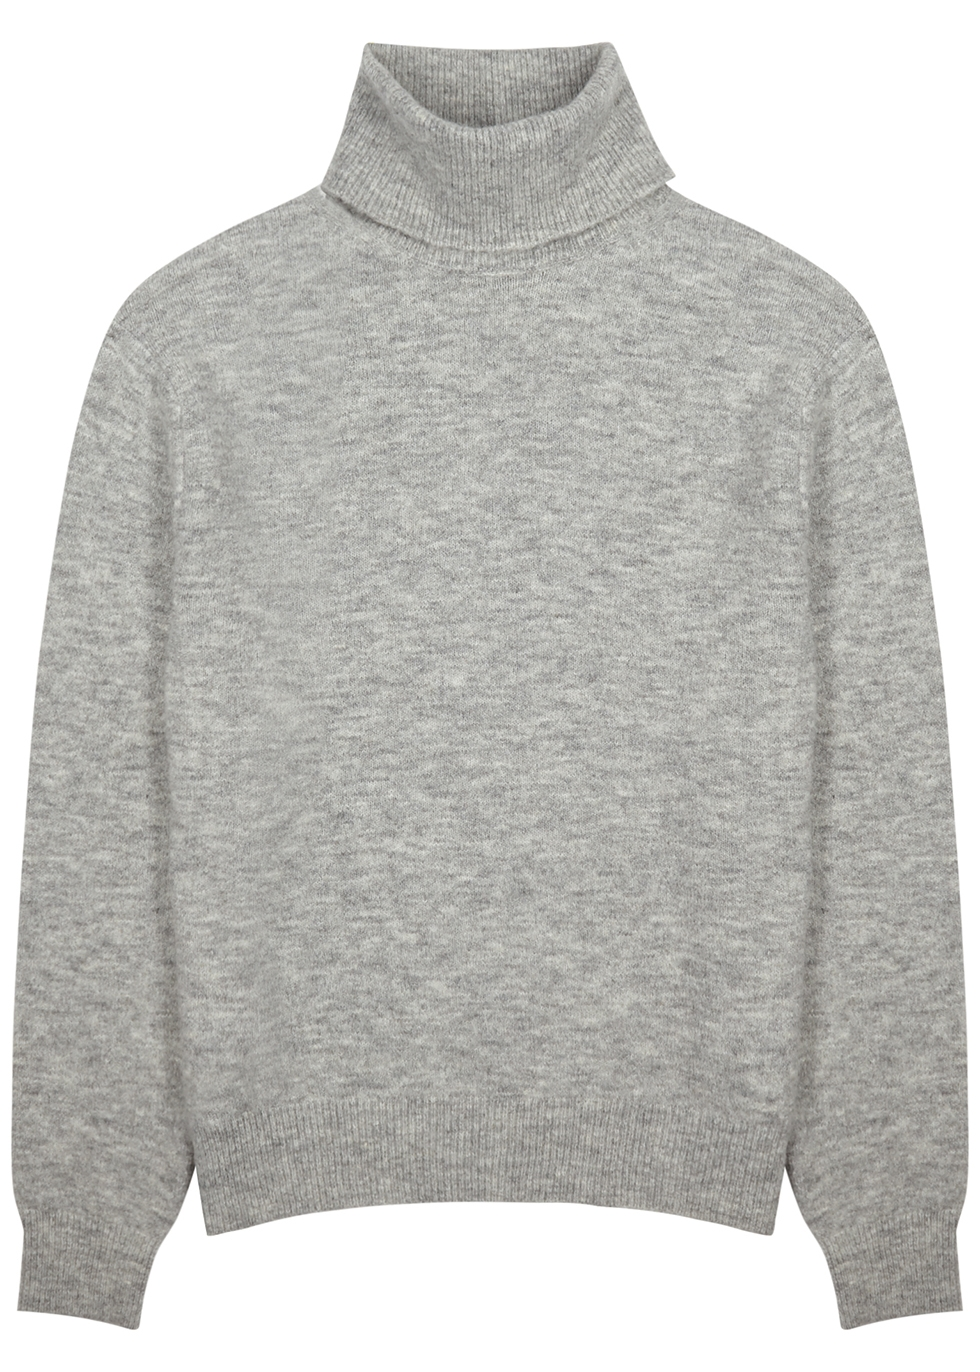 Malthe grey mélange knitted jumper